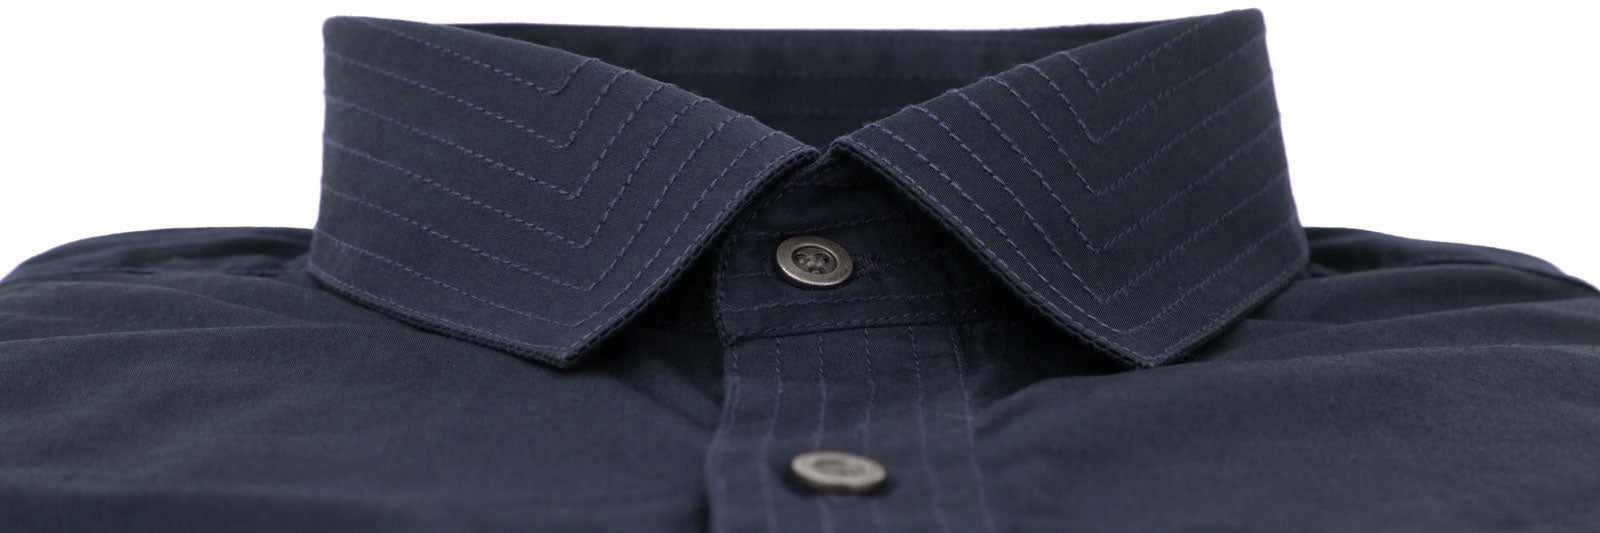 Utility Shirts Navy Fabric